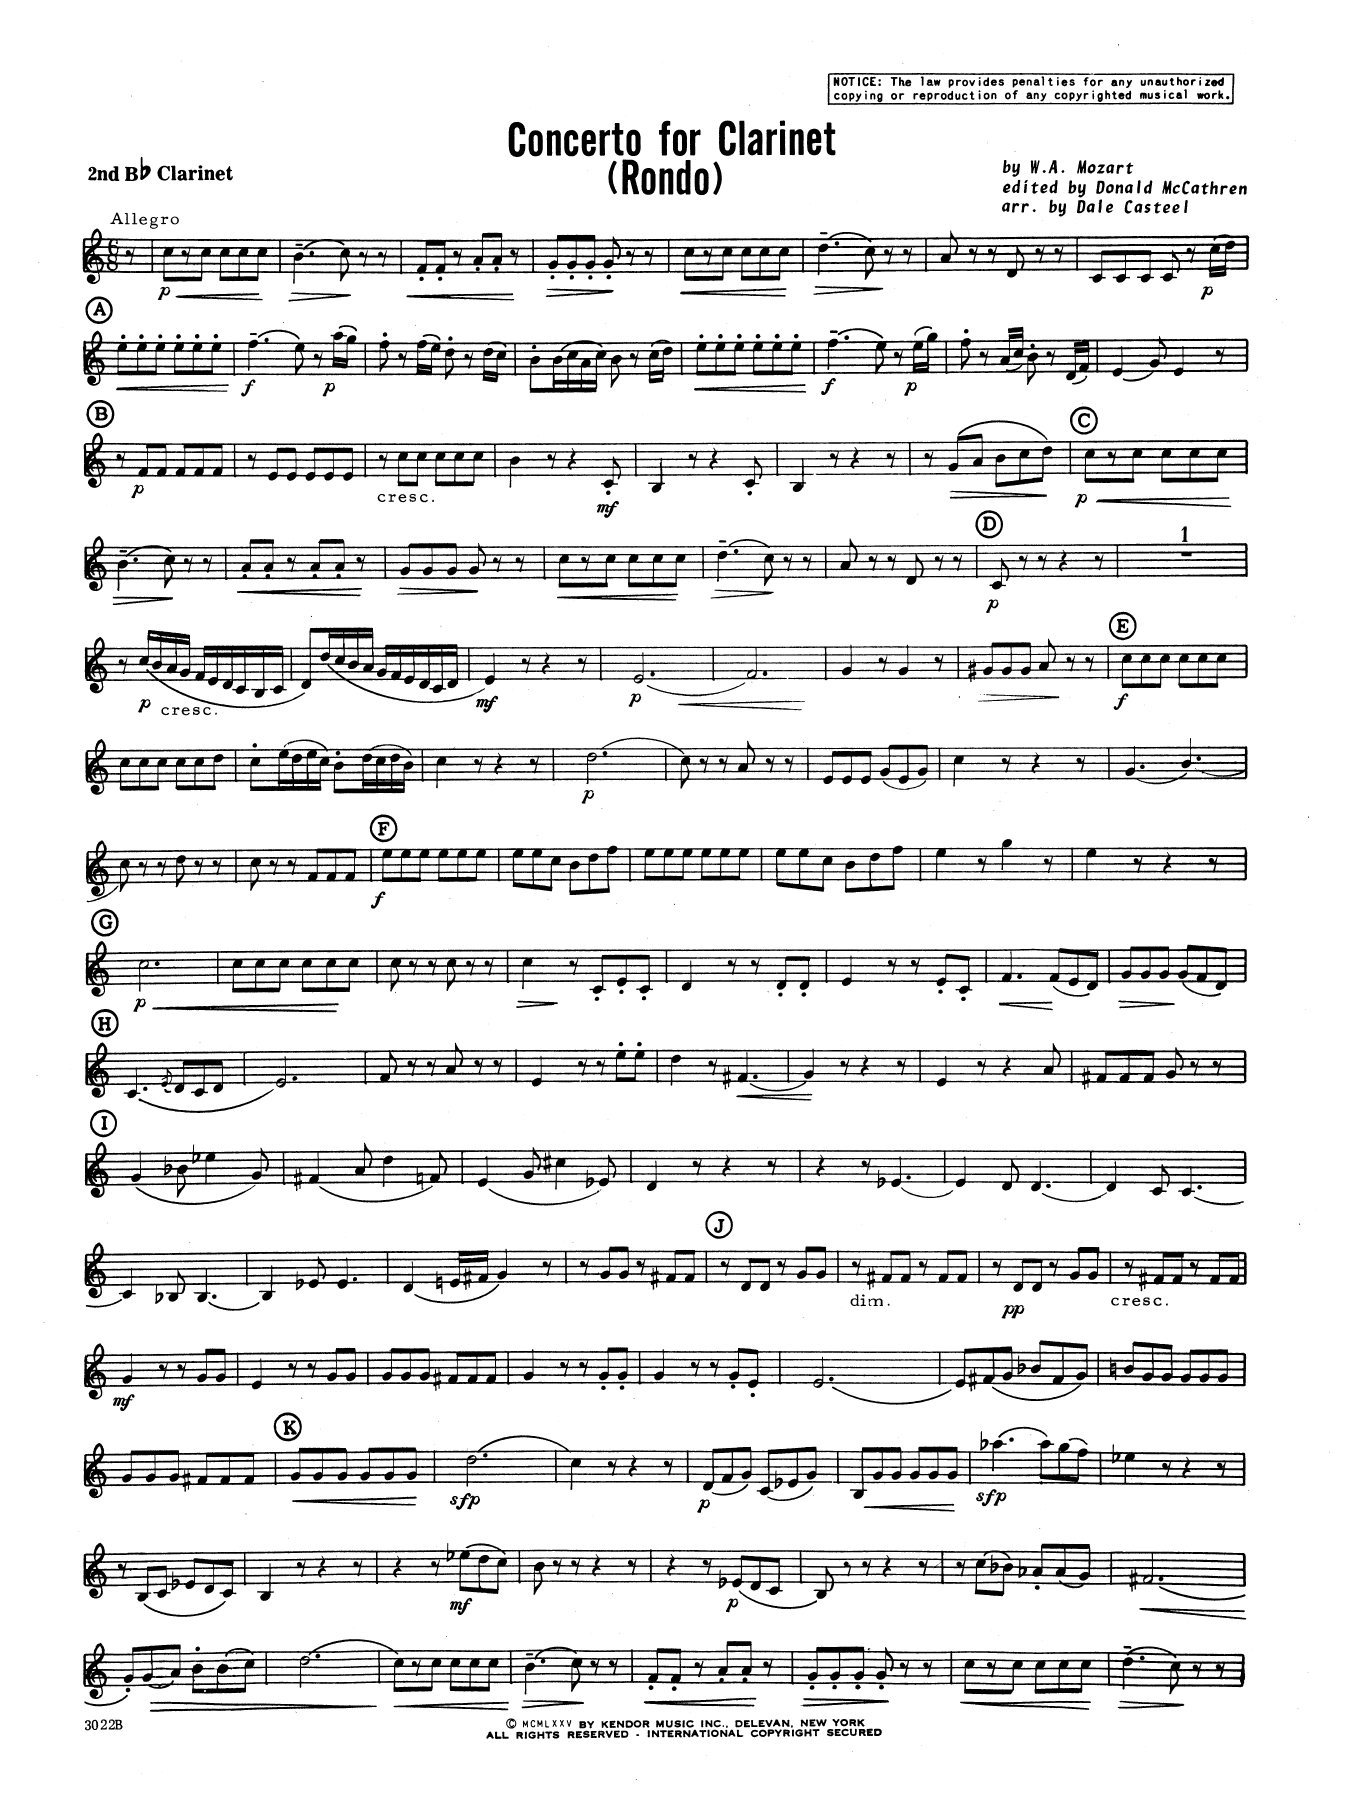 Donald McCathren and Dale Casteel Concerto For Clarinet - Rondo (3rd Movement) - K.622 - 2nd Bb Clarinet sheet music notes printable PDF score